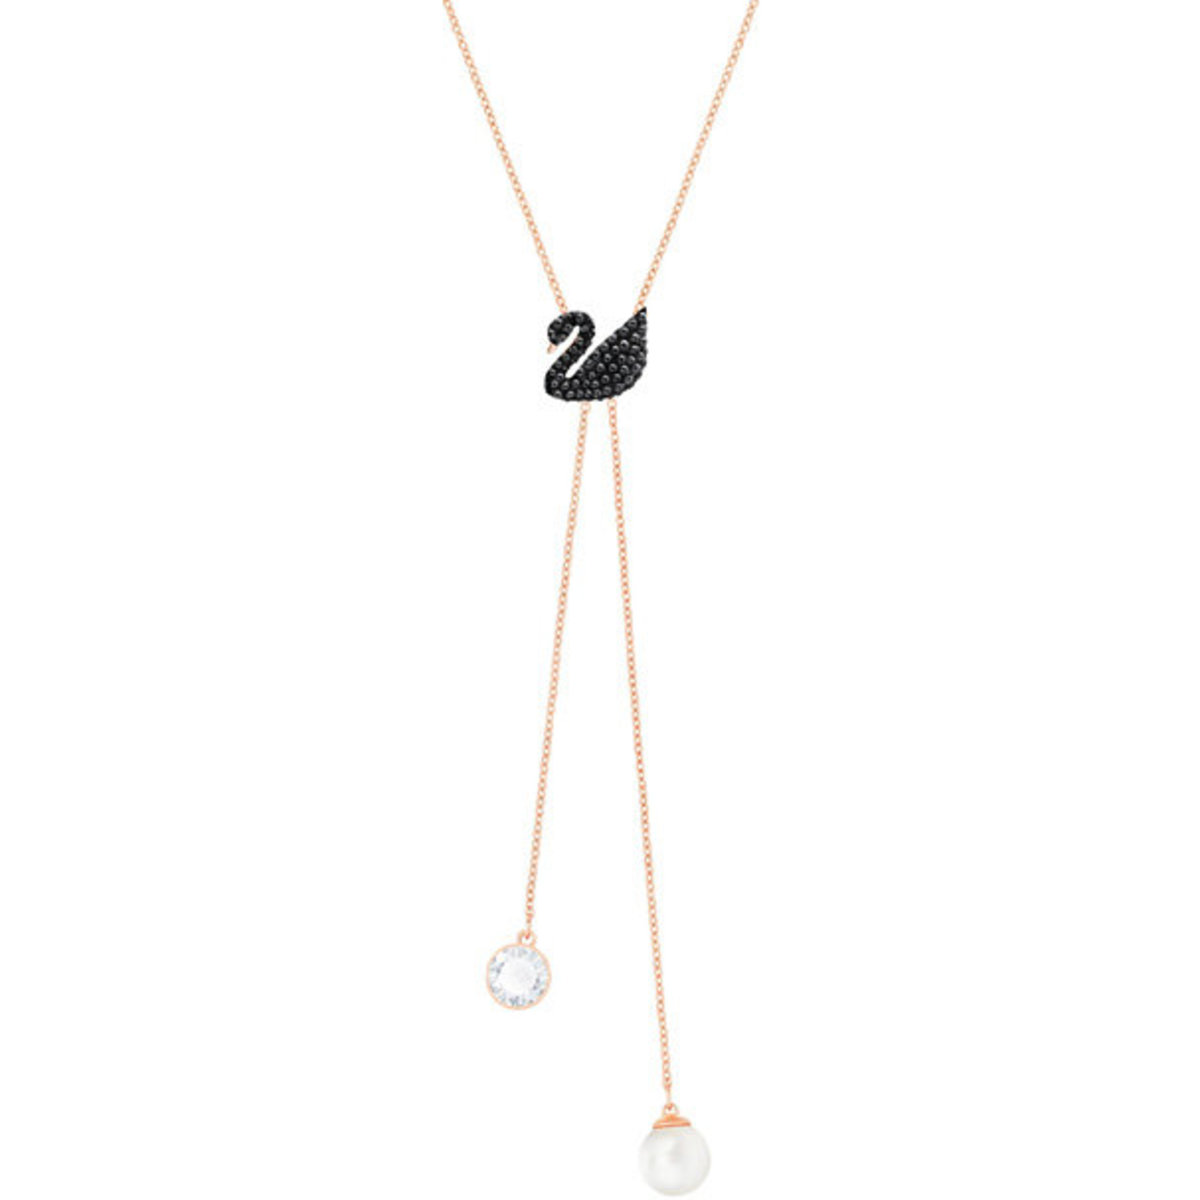 Necklaces - Swarovski Iconic Swan Y Necklace - 5351806 (Parallel Import Goods)